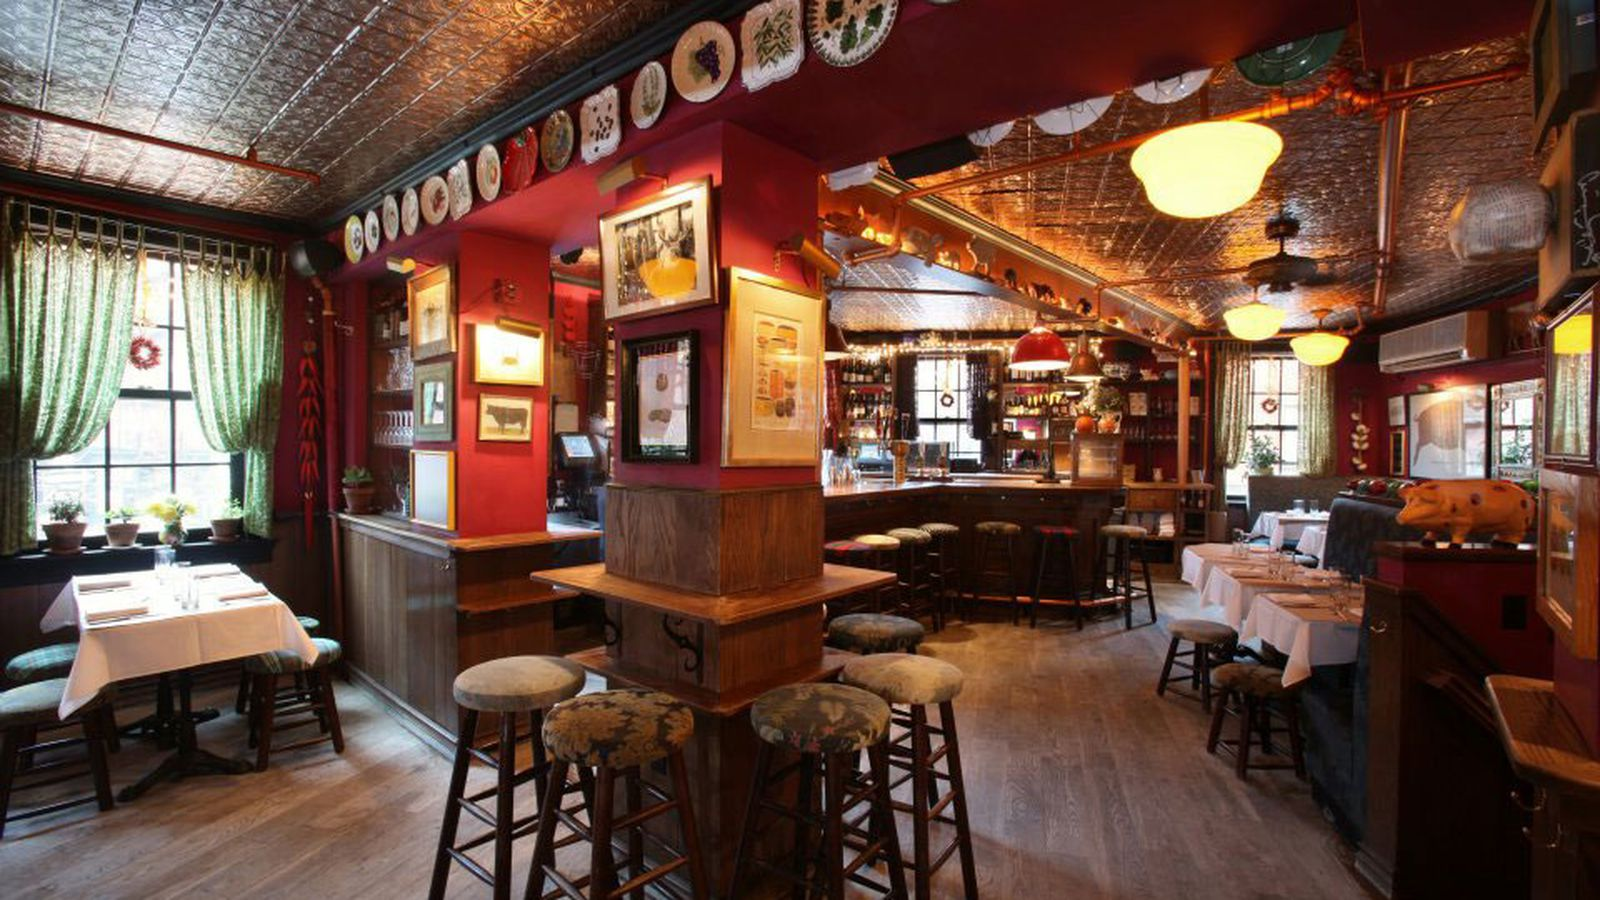 Le Dialogue Interieur Hal Stone Gordon Ramsay Has Officially Turned Over The Spotted Pig